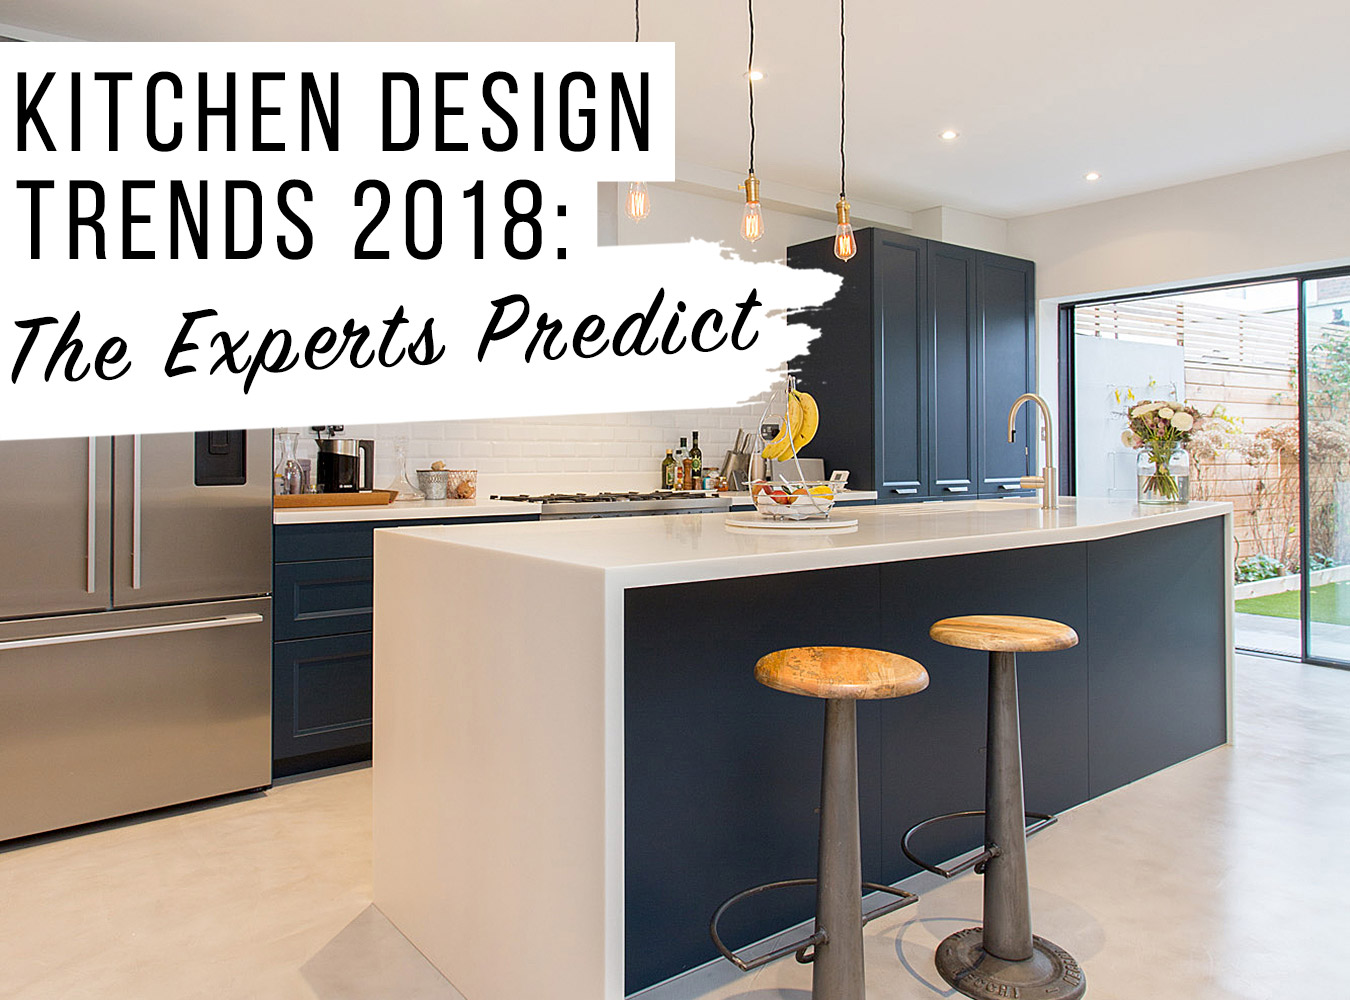 Kitchen trends 2018 the experts predict the luxpad for Kitchen design trends 2018